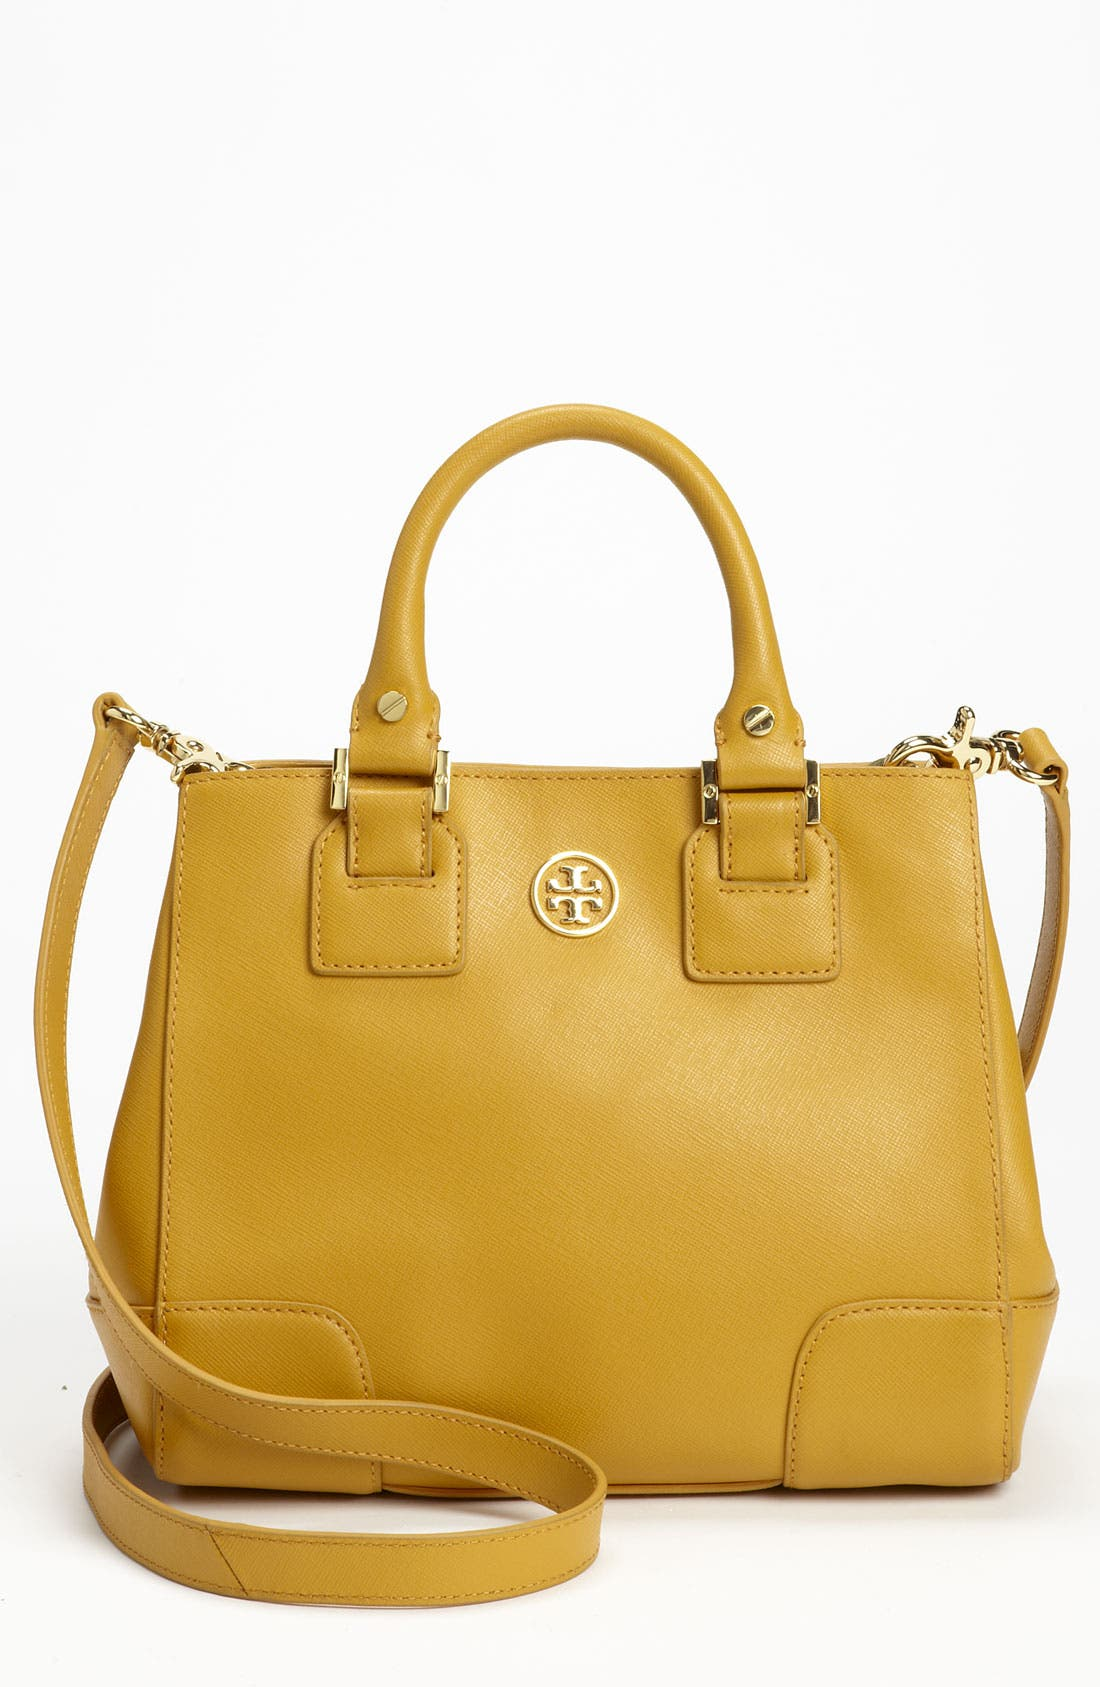 Alternate Image 1 Selected - Tory Burch 'Square - Mini' Tote